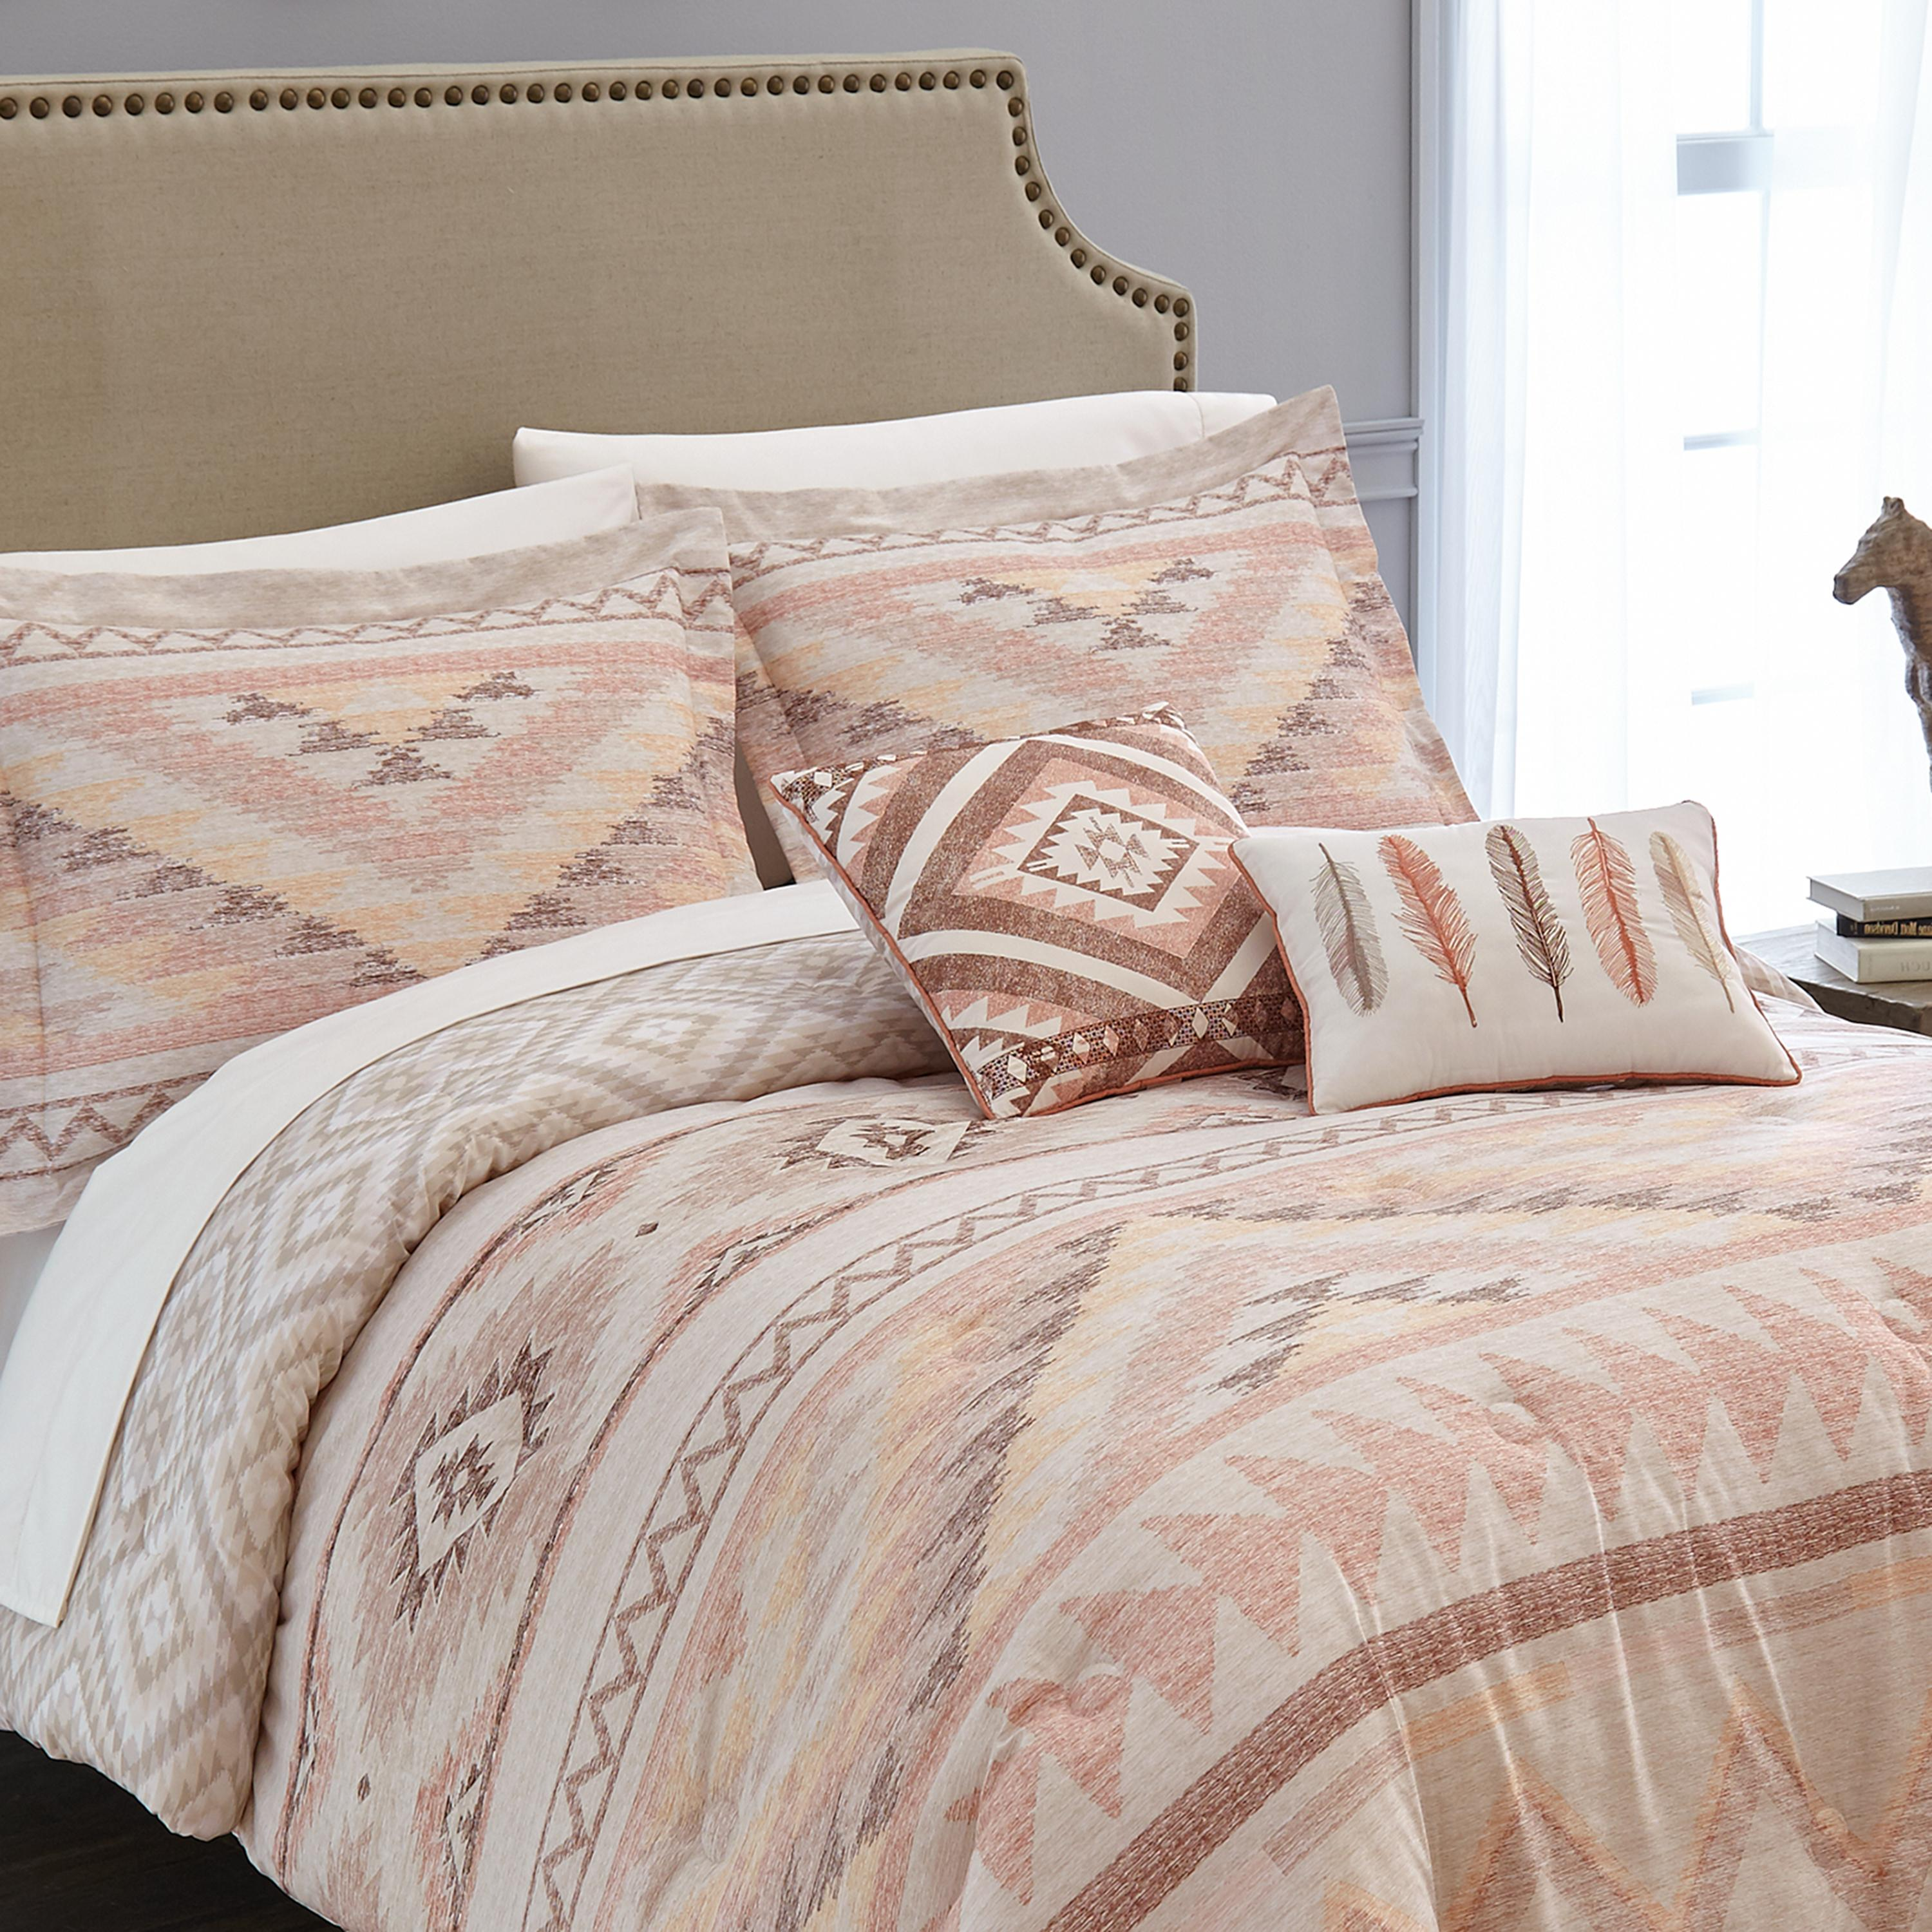 size for exciting southwest bedroom il bedding native quilts quilt western southwestern bedspreads twin fullxfull and version cabins comforter crib comforters sets american zoom rustic quiltsr